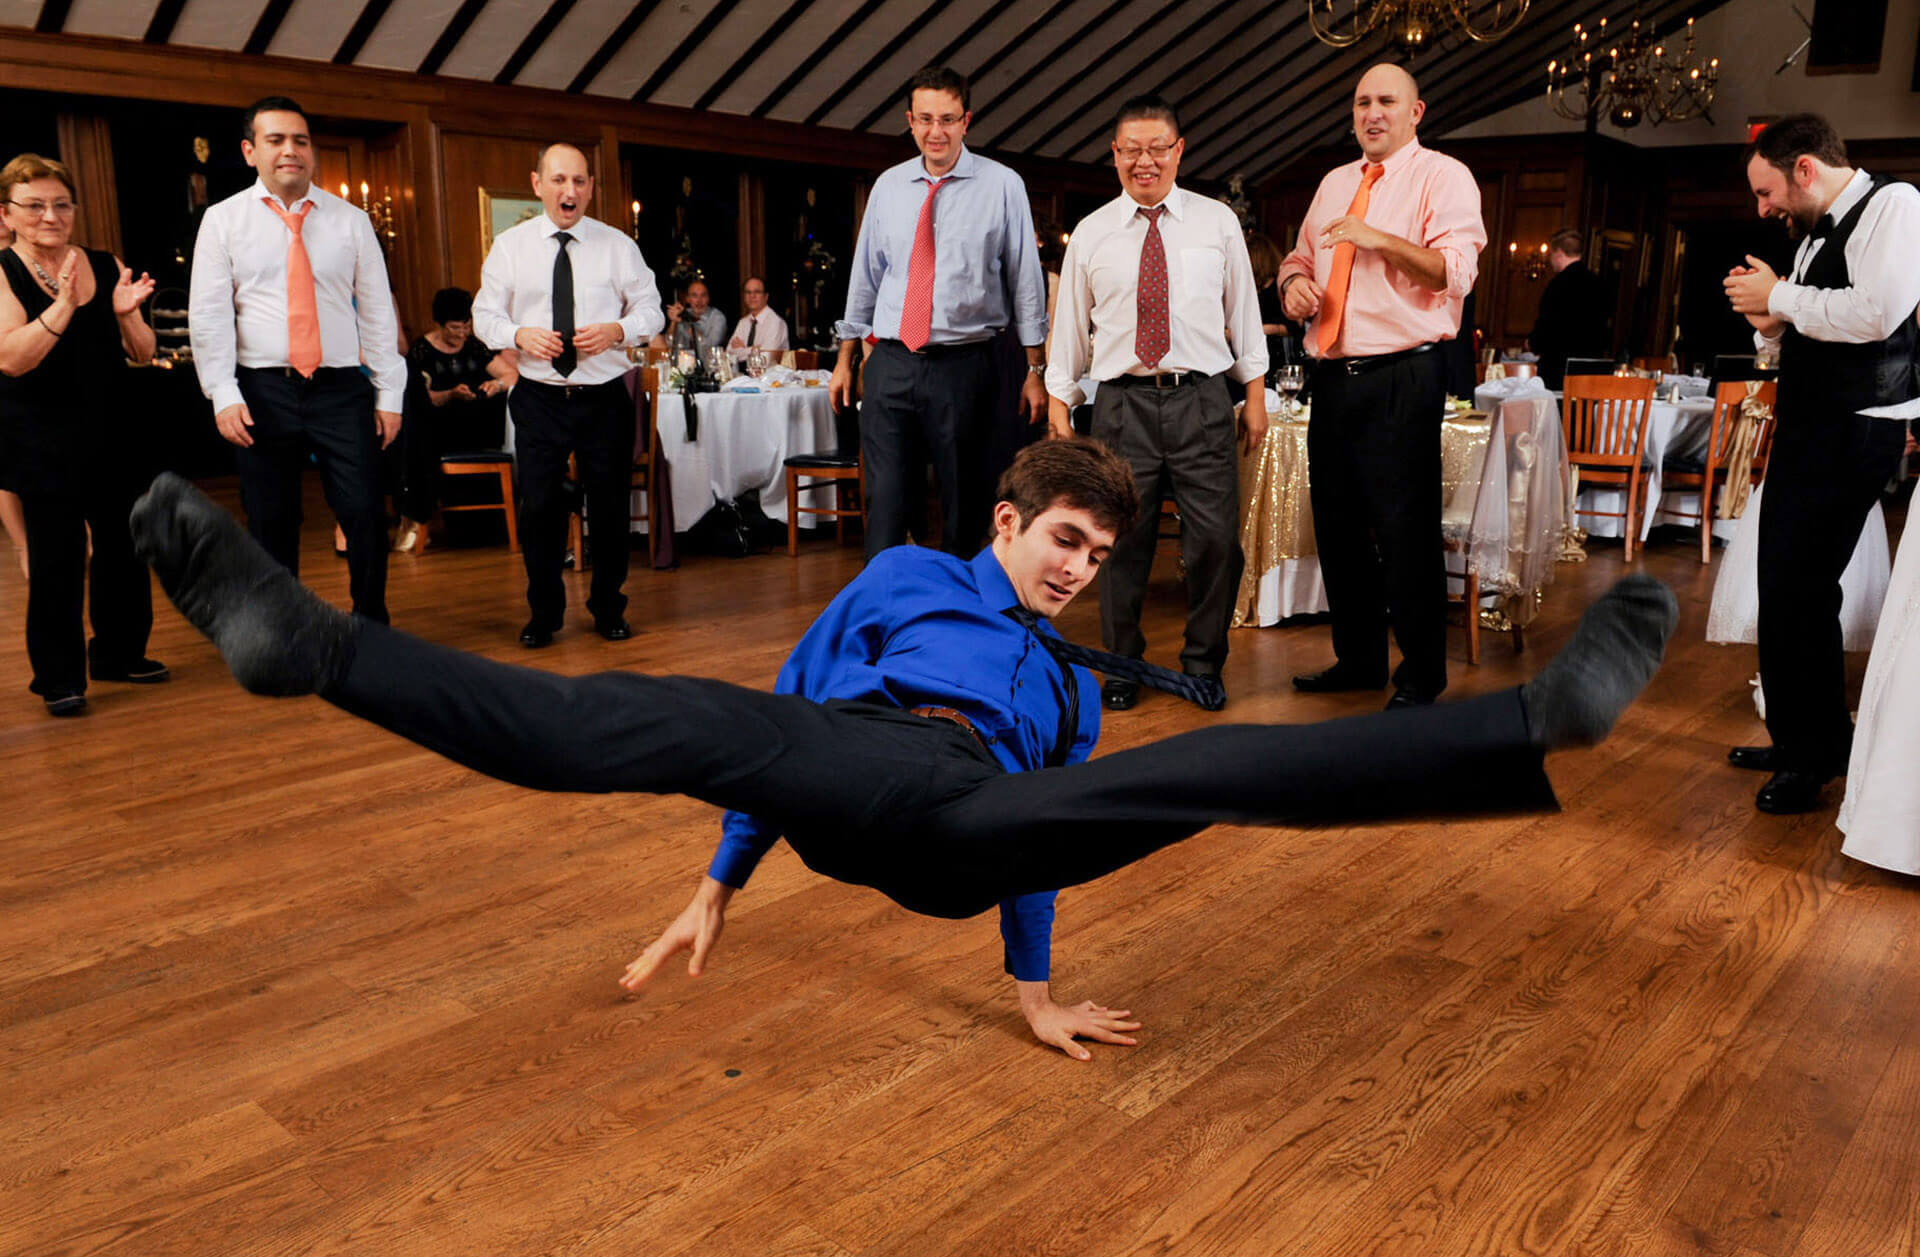 A wedding guests starts to break dance at a King's Court Castle wedding at Canterbury Village in Lake Orion, Michigan wedding taking place at the Canterbury Village during a winter wedding in Michigan.